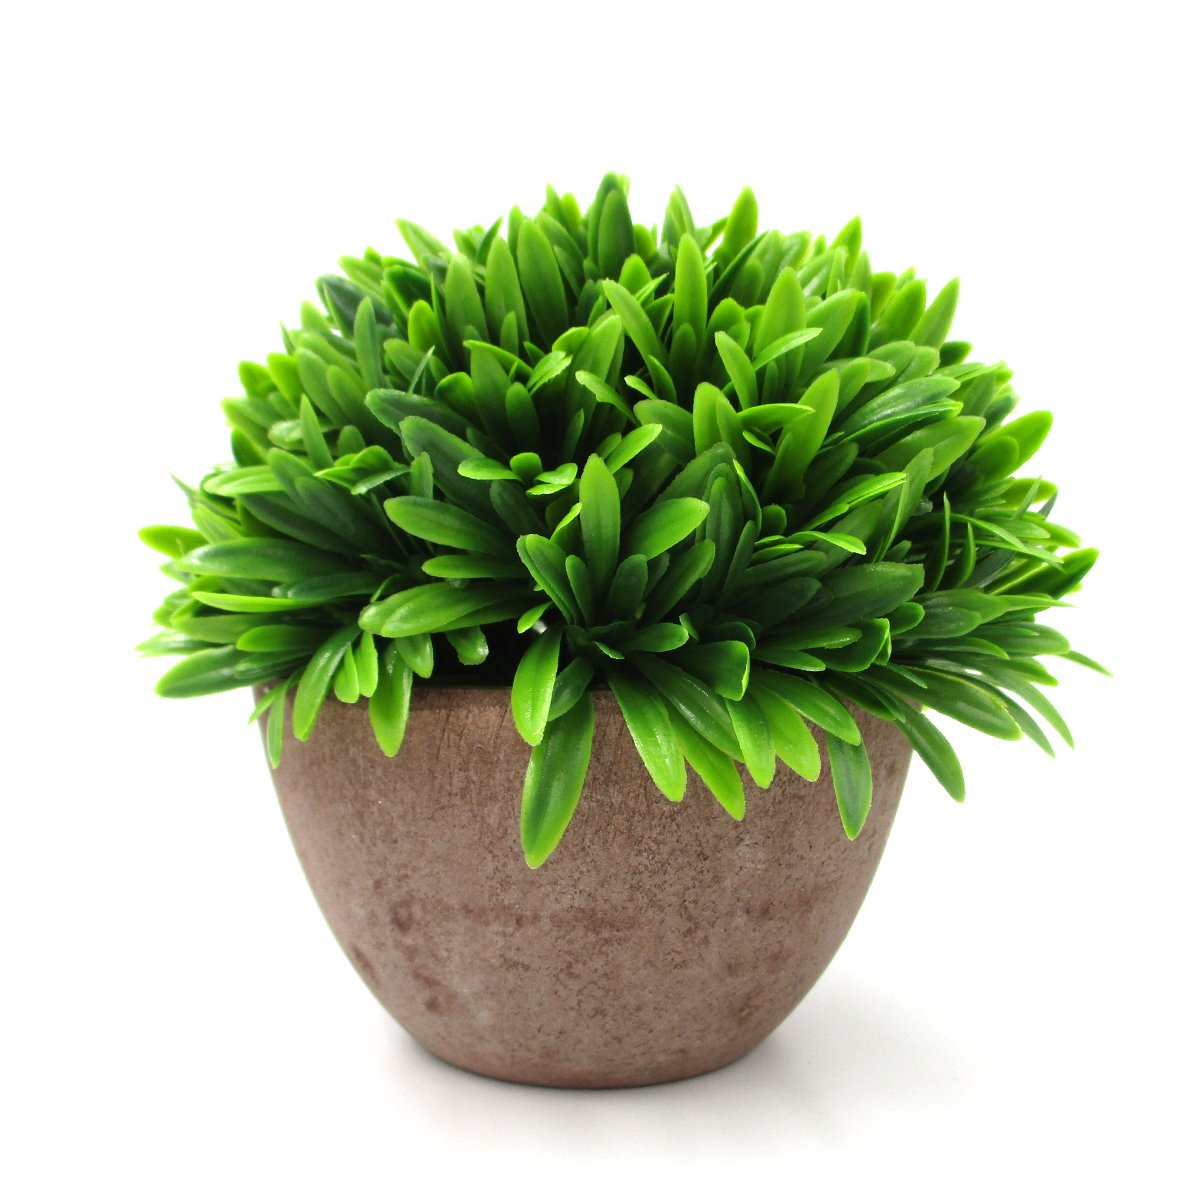 AZHOME Artificial Plants, 5 Inches